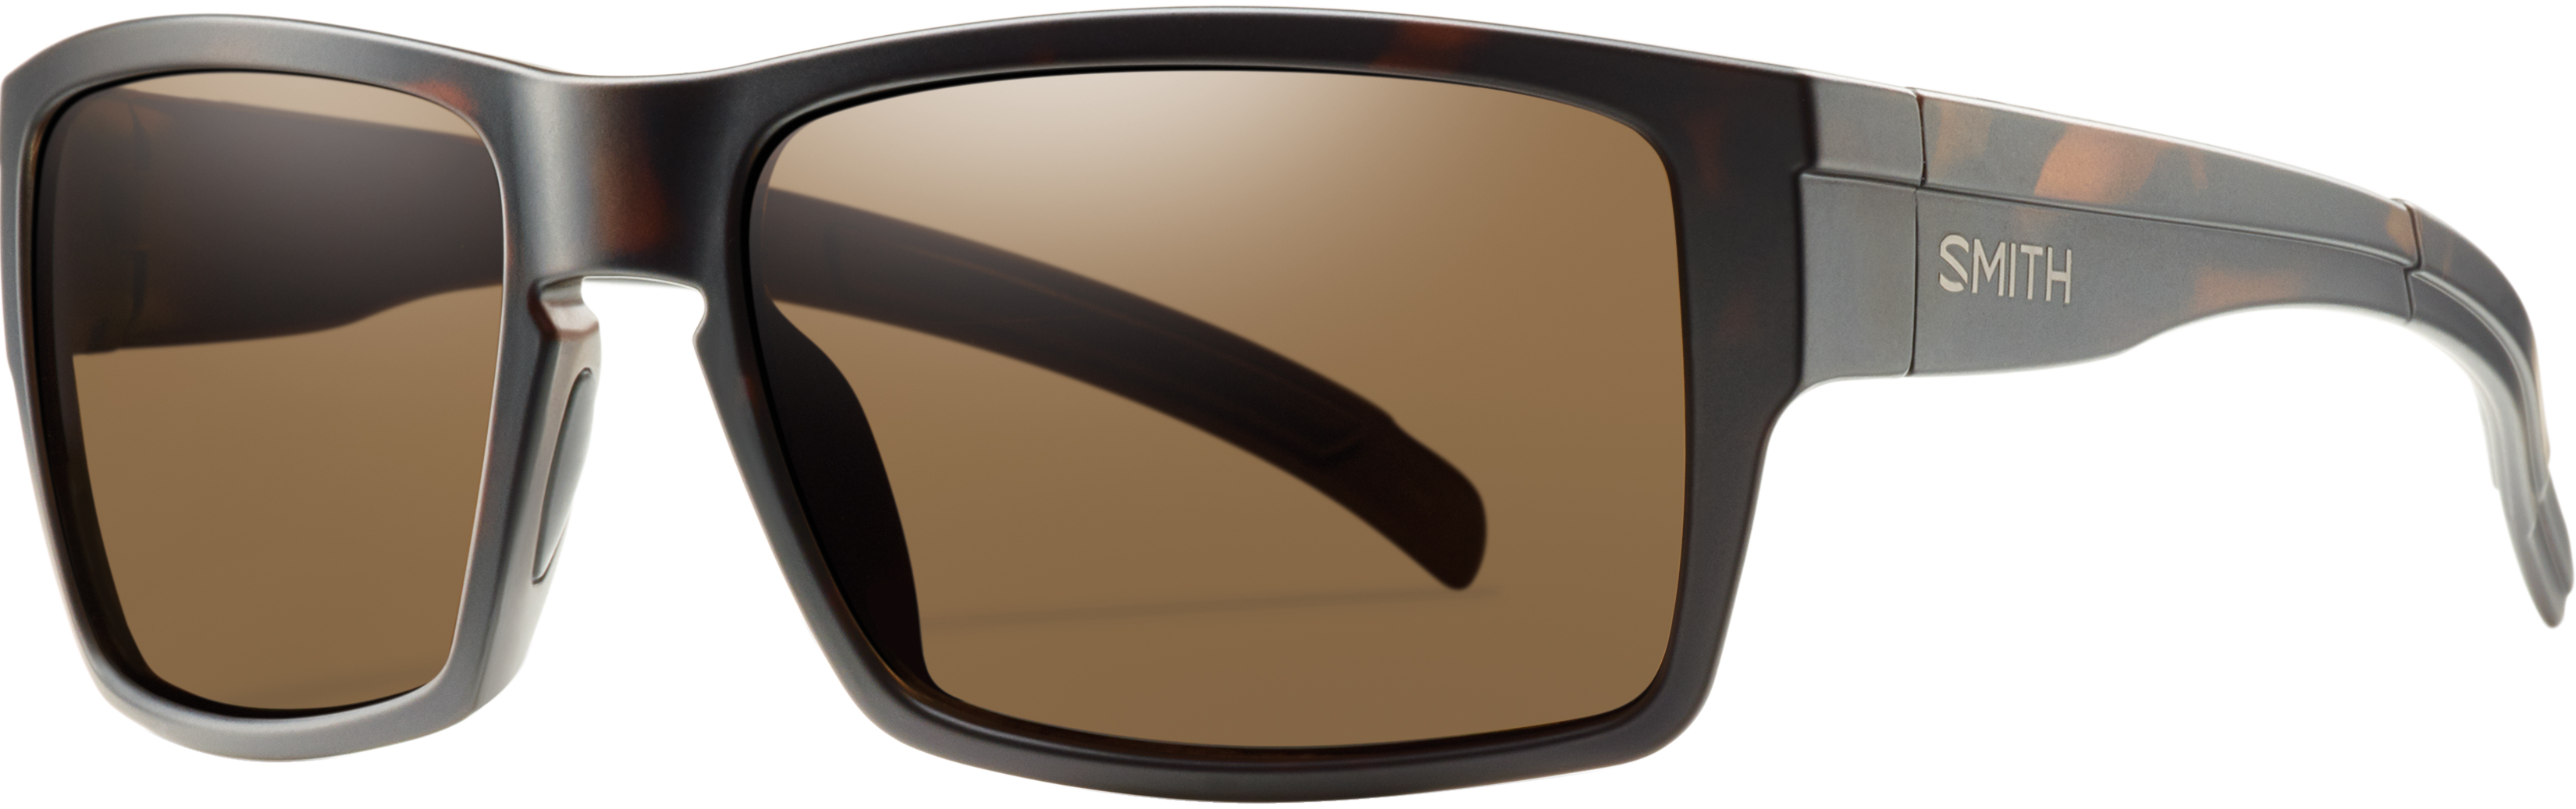 eaf8a75931 Smith Outlier XL Sunglasses - Unisex